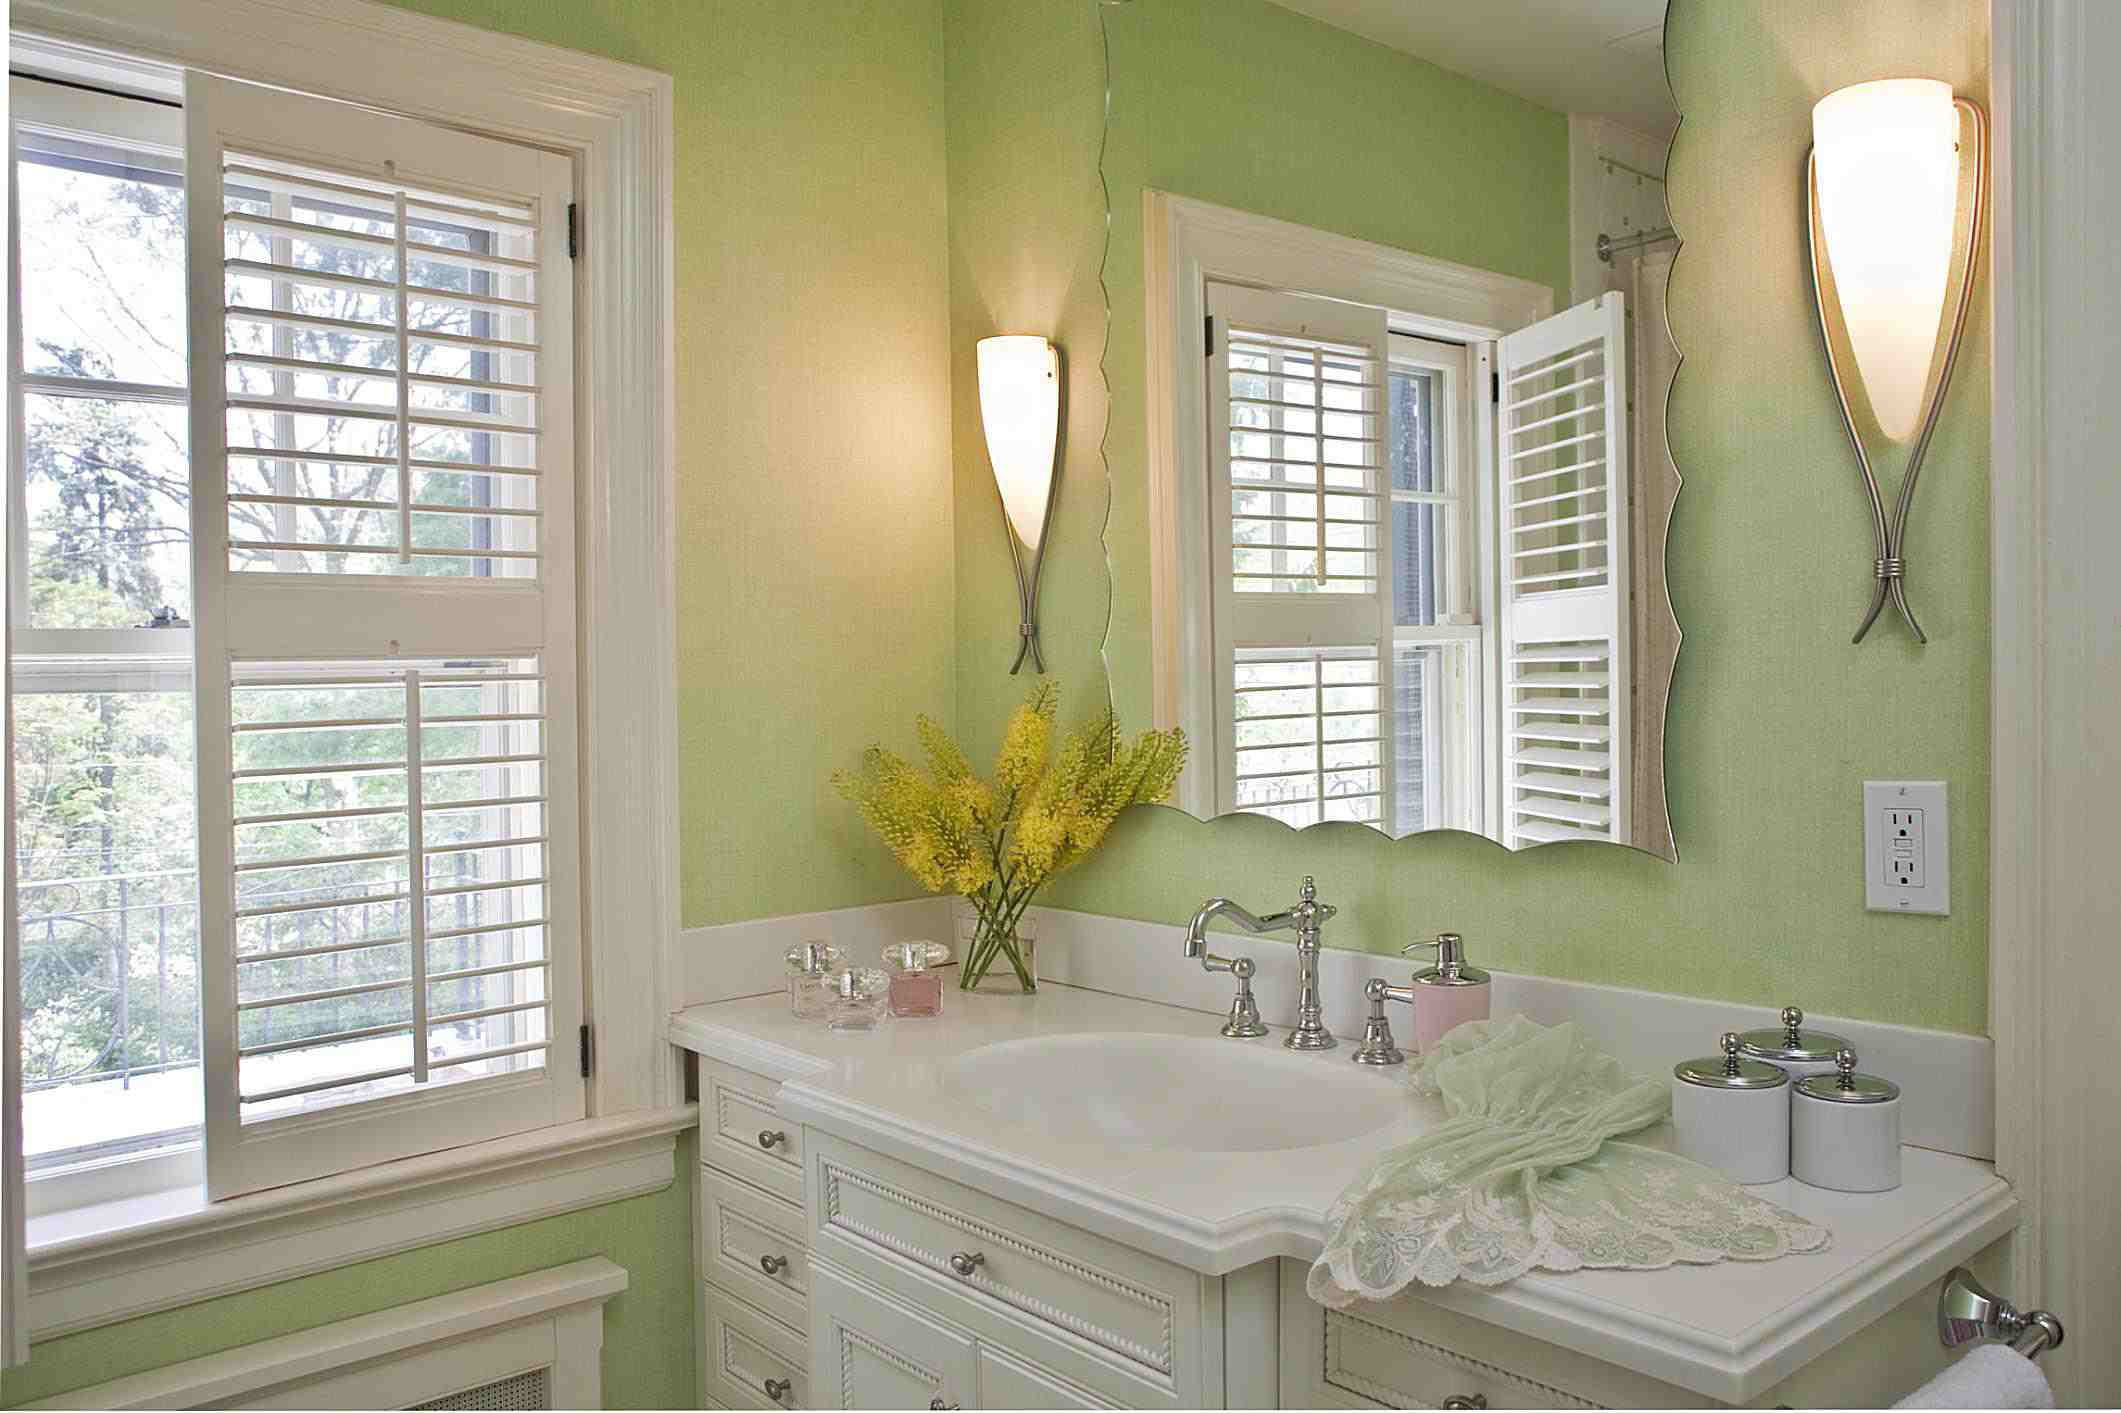 Small Bathroom Photos Ideas Ways To Add Lighting A Closet Without Wiring Apartment Therapy